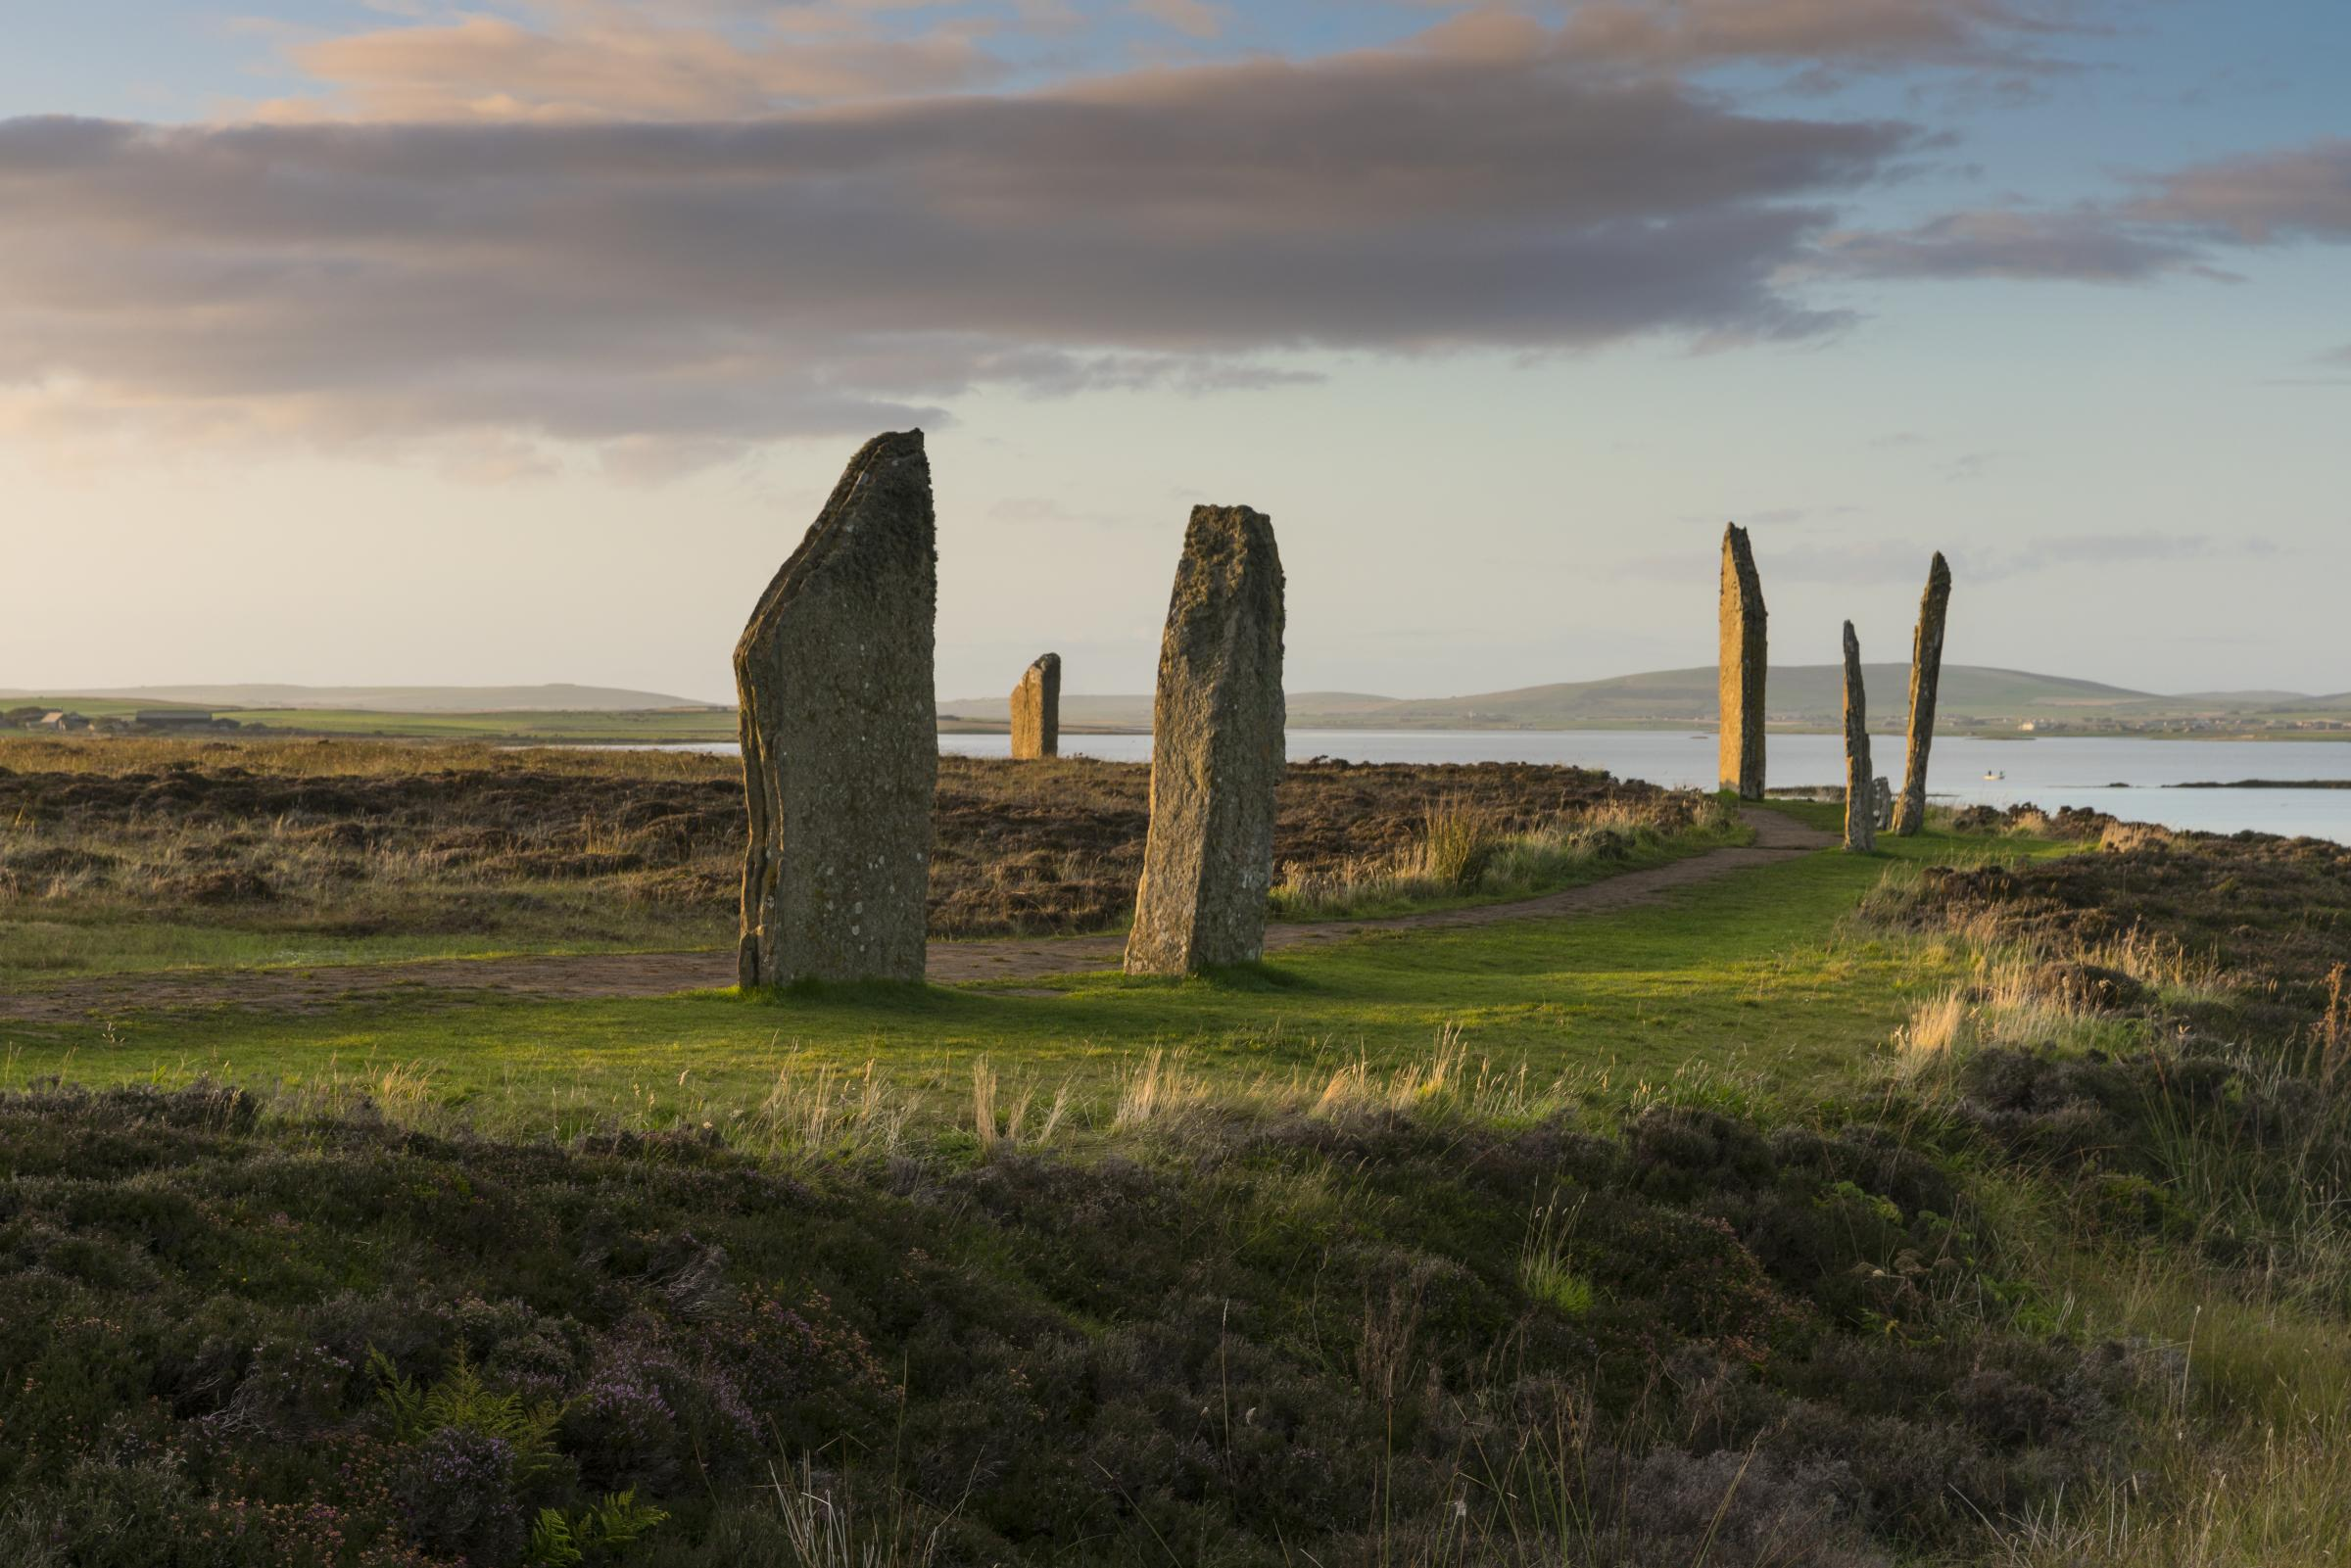 Ring of Brodgar in Orkney is vandalised with graffiti